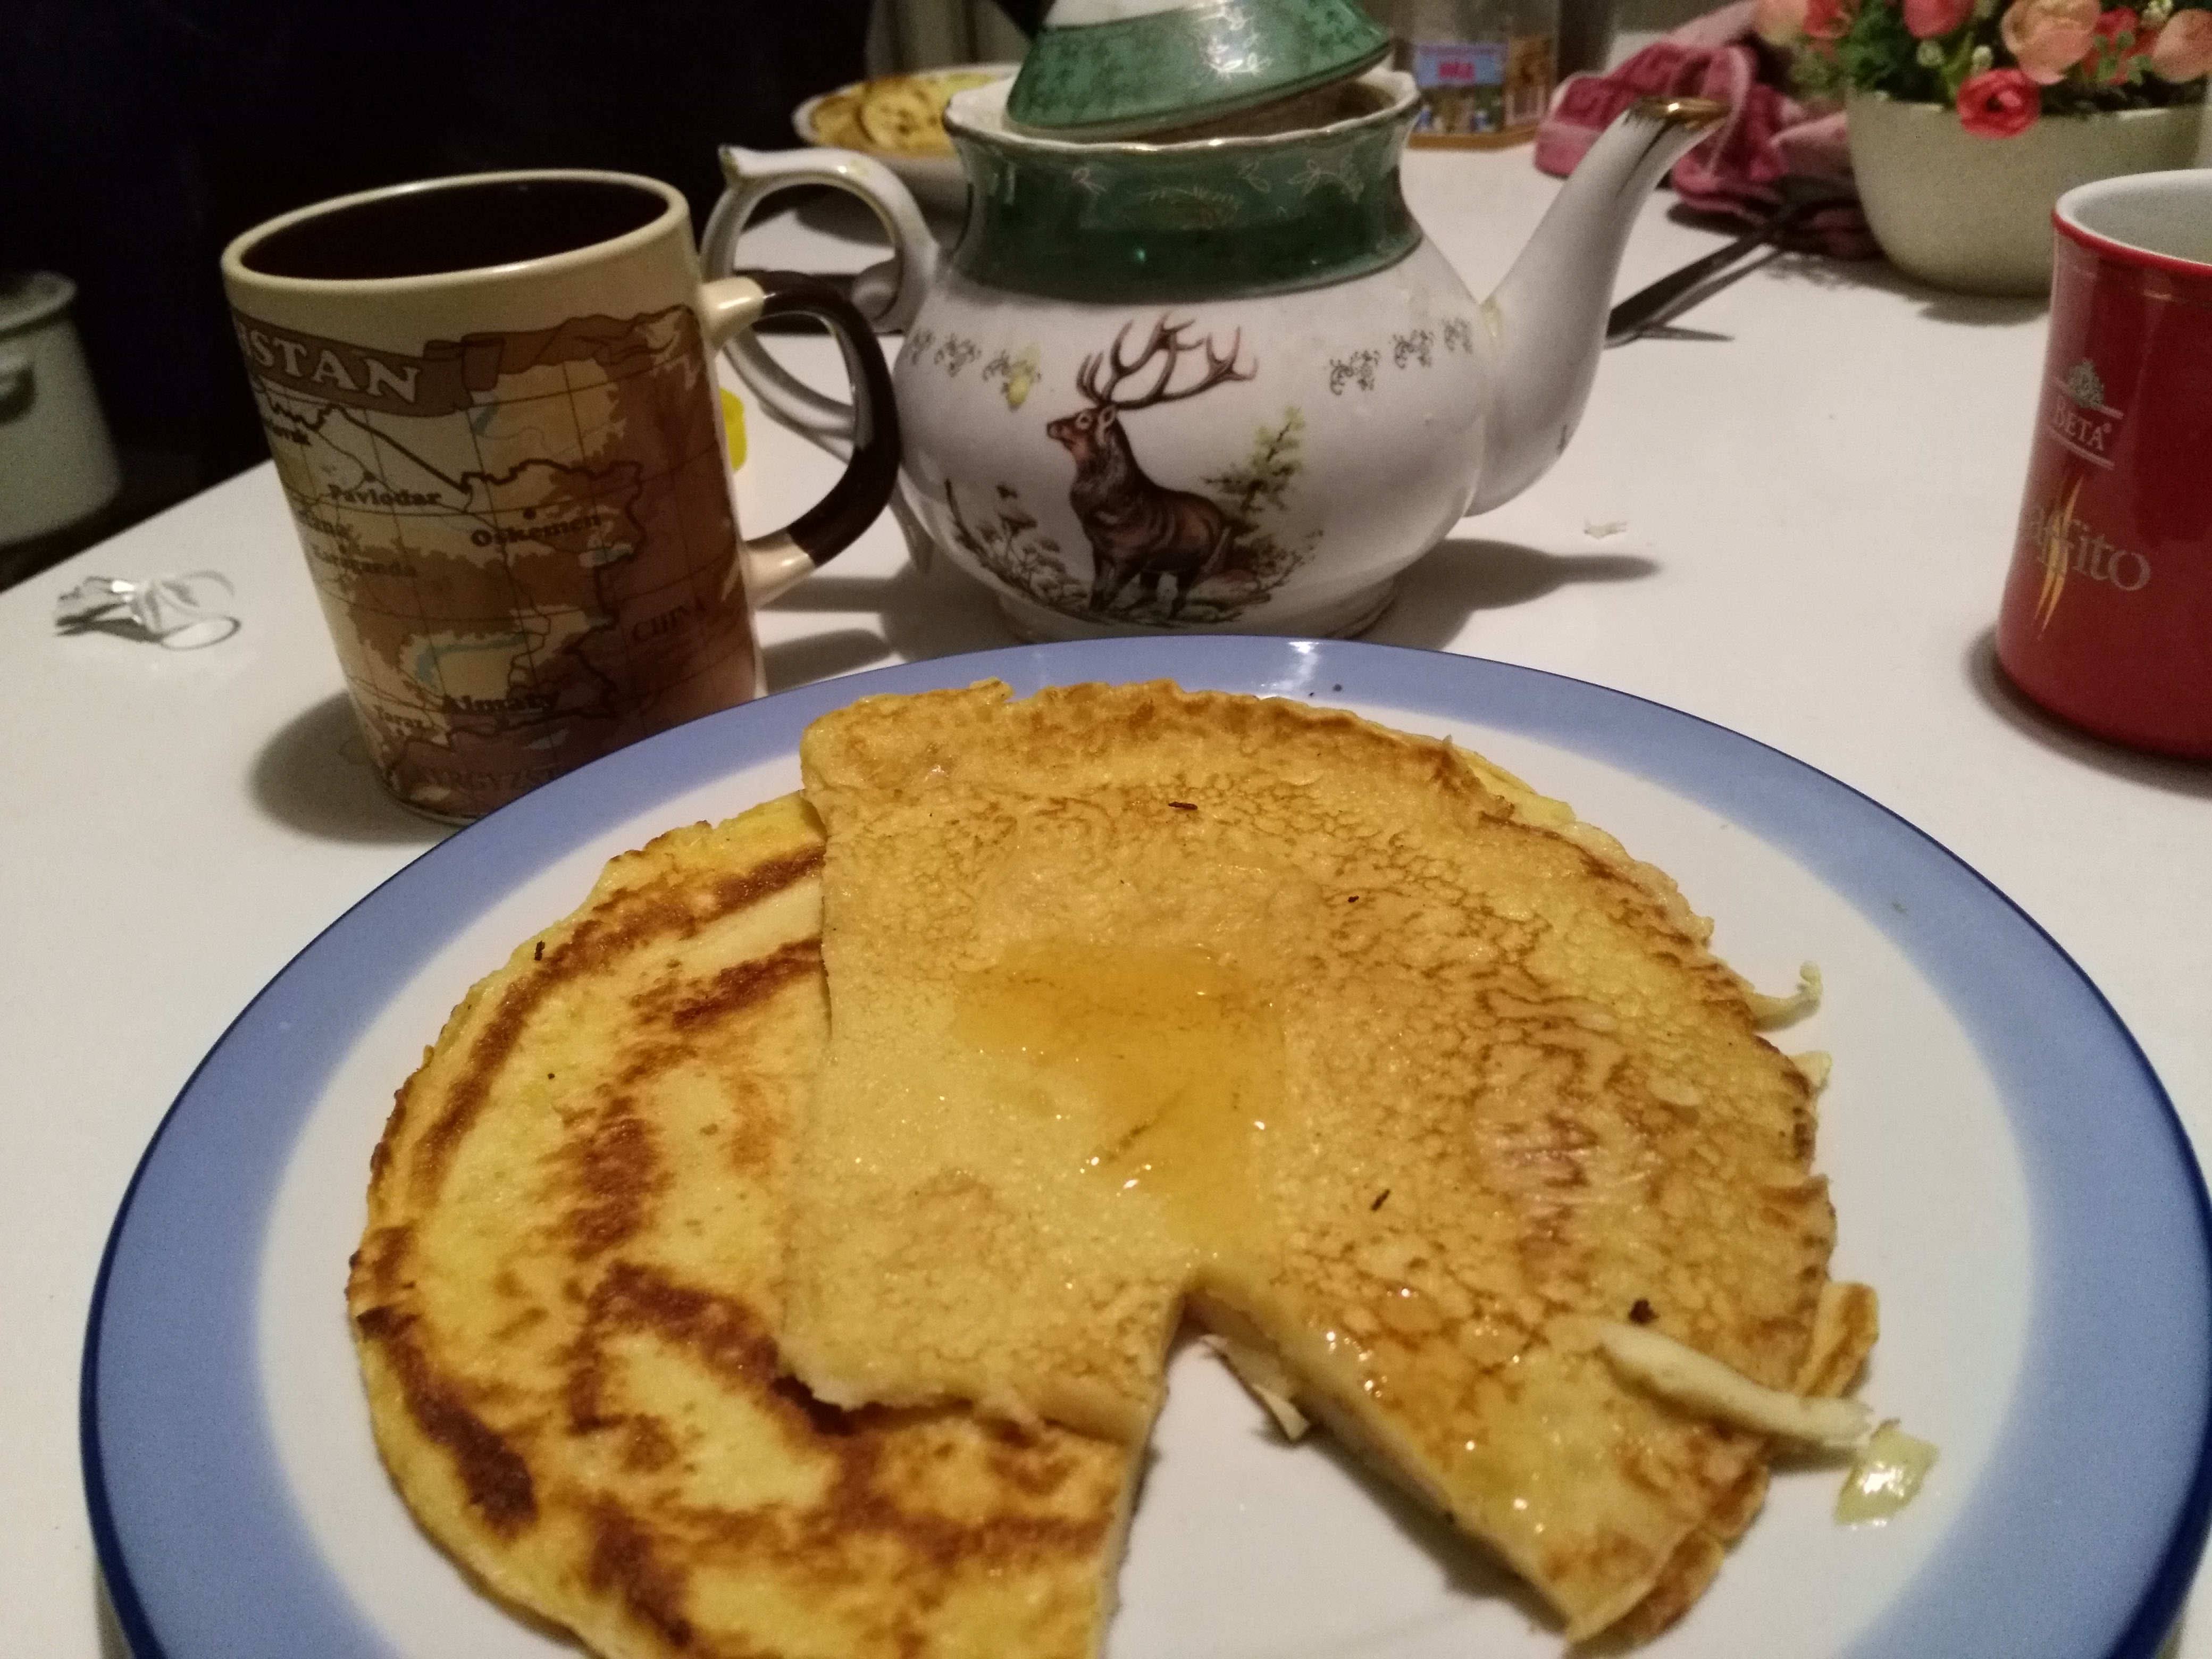 Homemade pancakes, courtesy of my Bishkek roommate, Alexy.